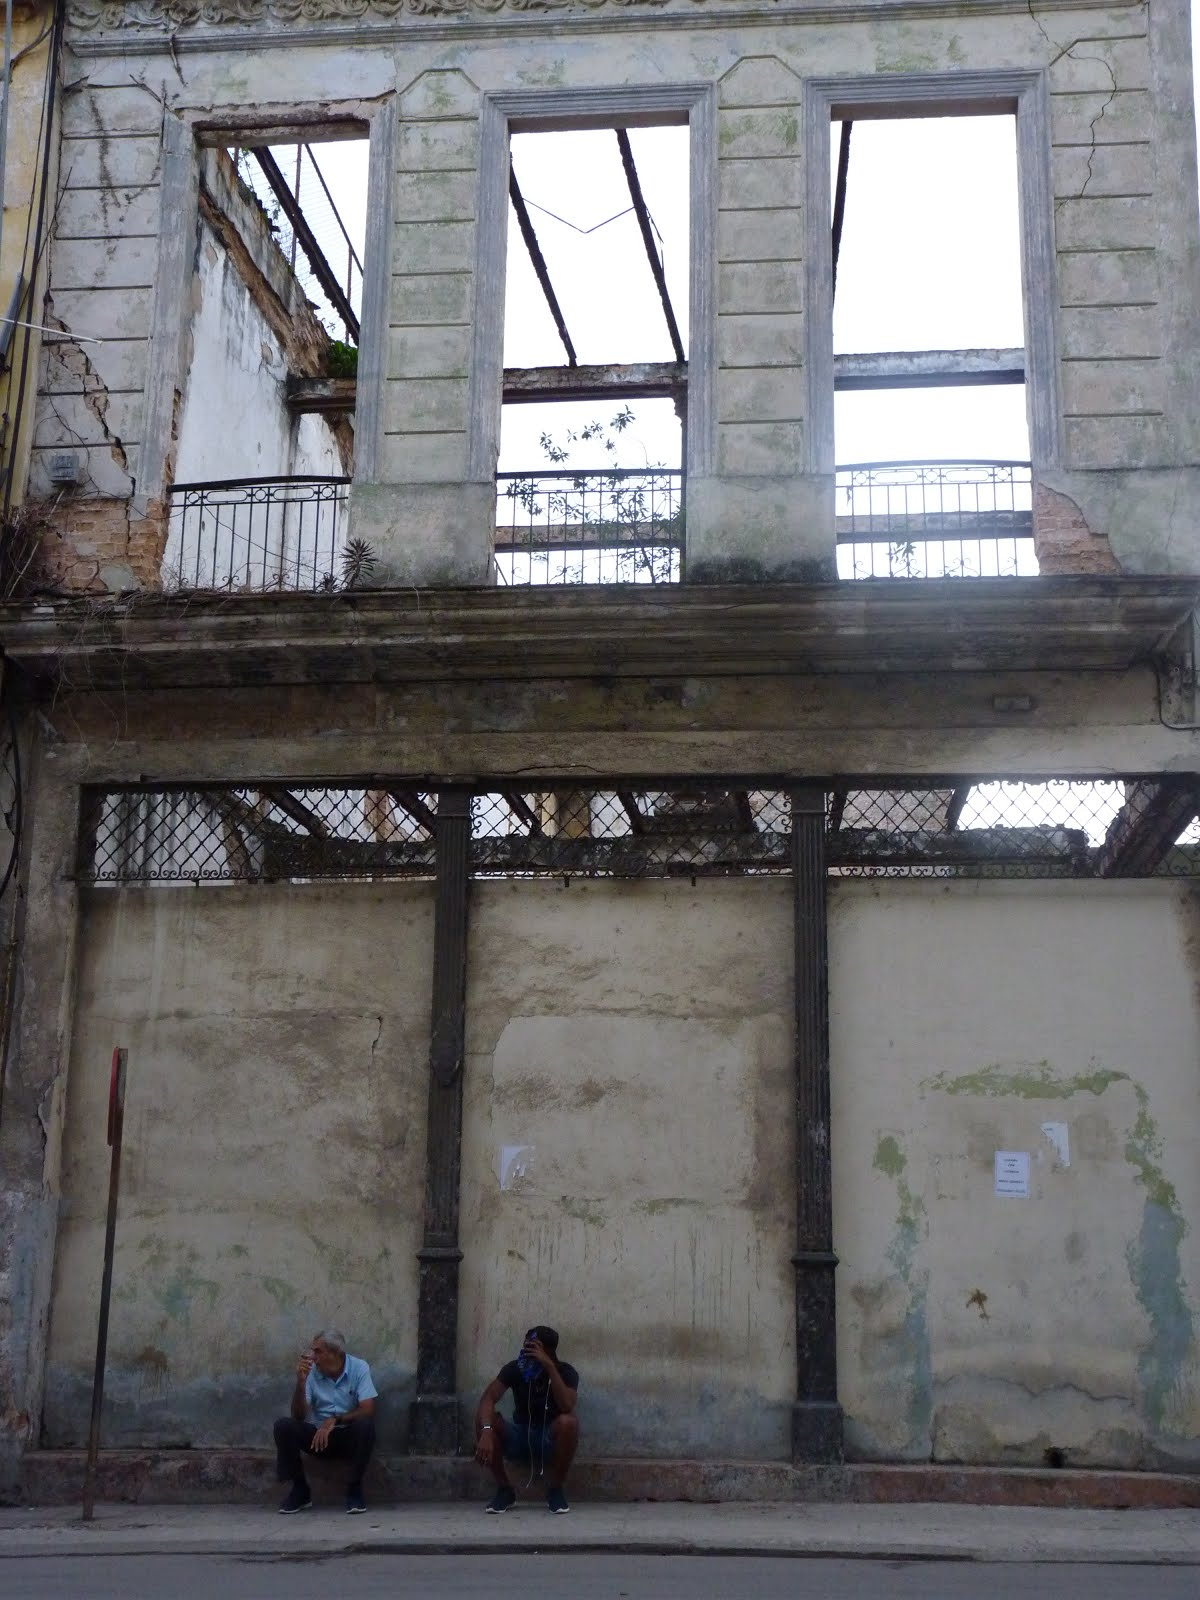 Two men sit on the curb of a remaining structure of a building in the old part of Havana. The structure was solely supported by the erection of the interior metal framework - a common place for cats to lounge, as well.